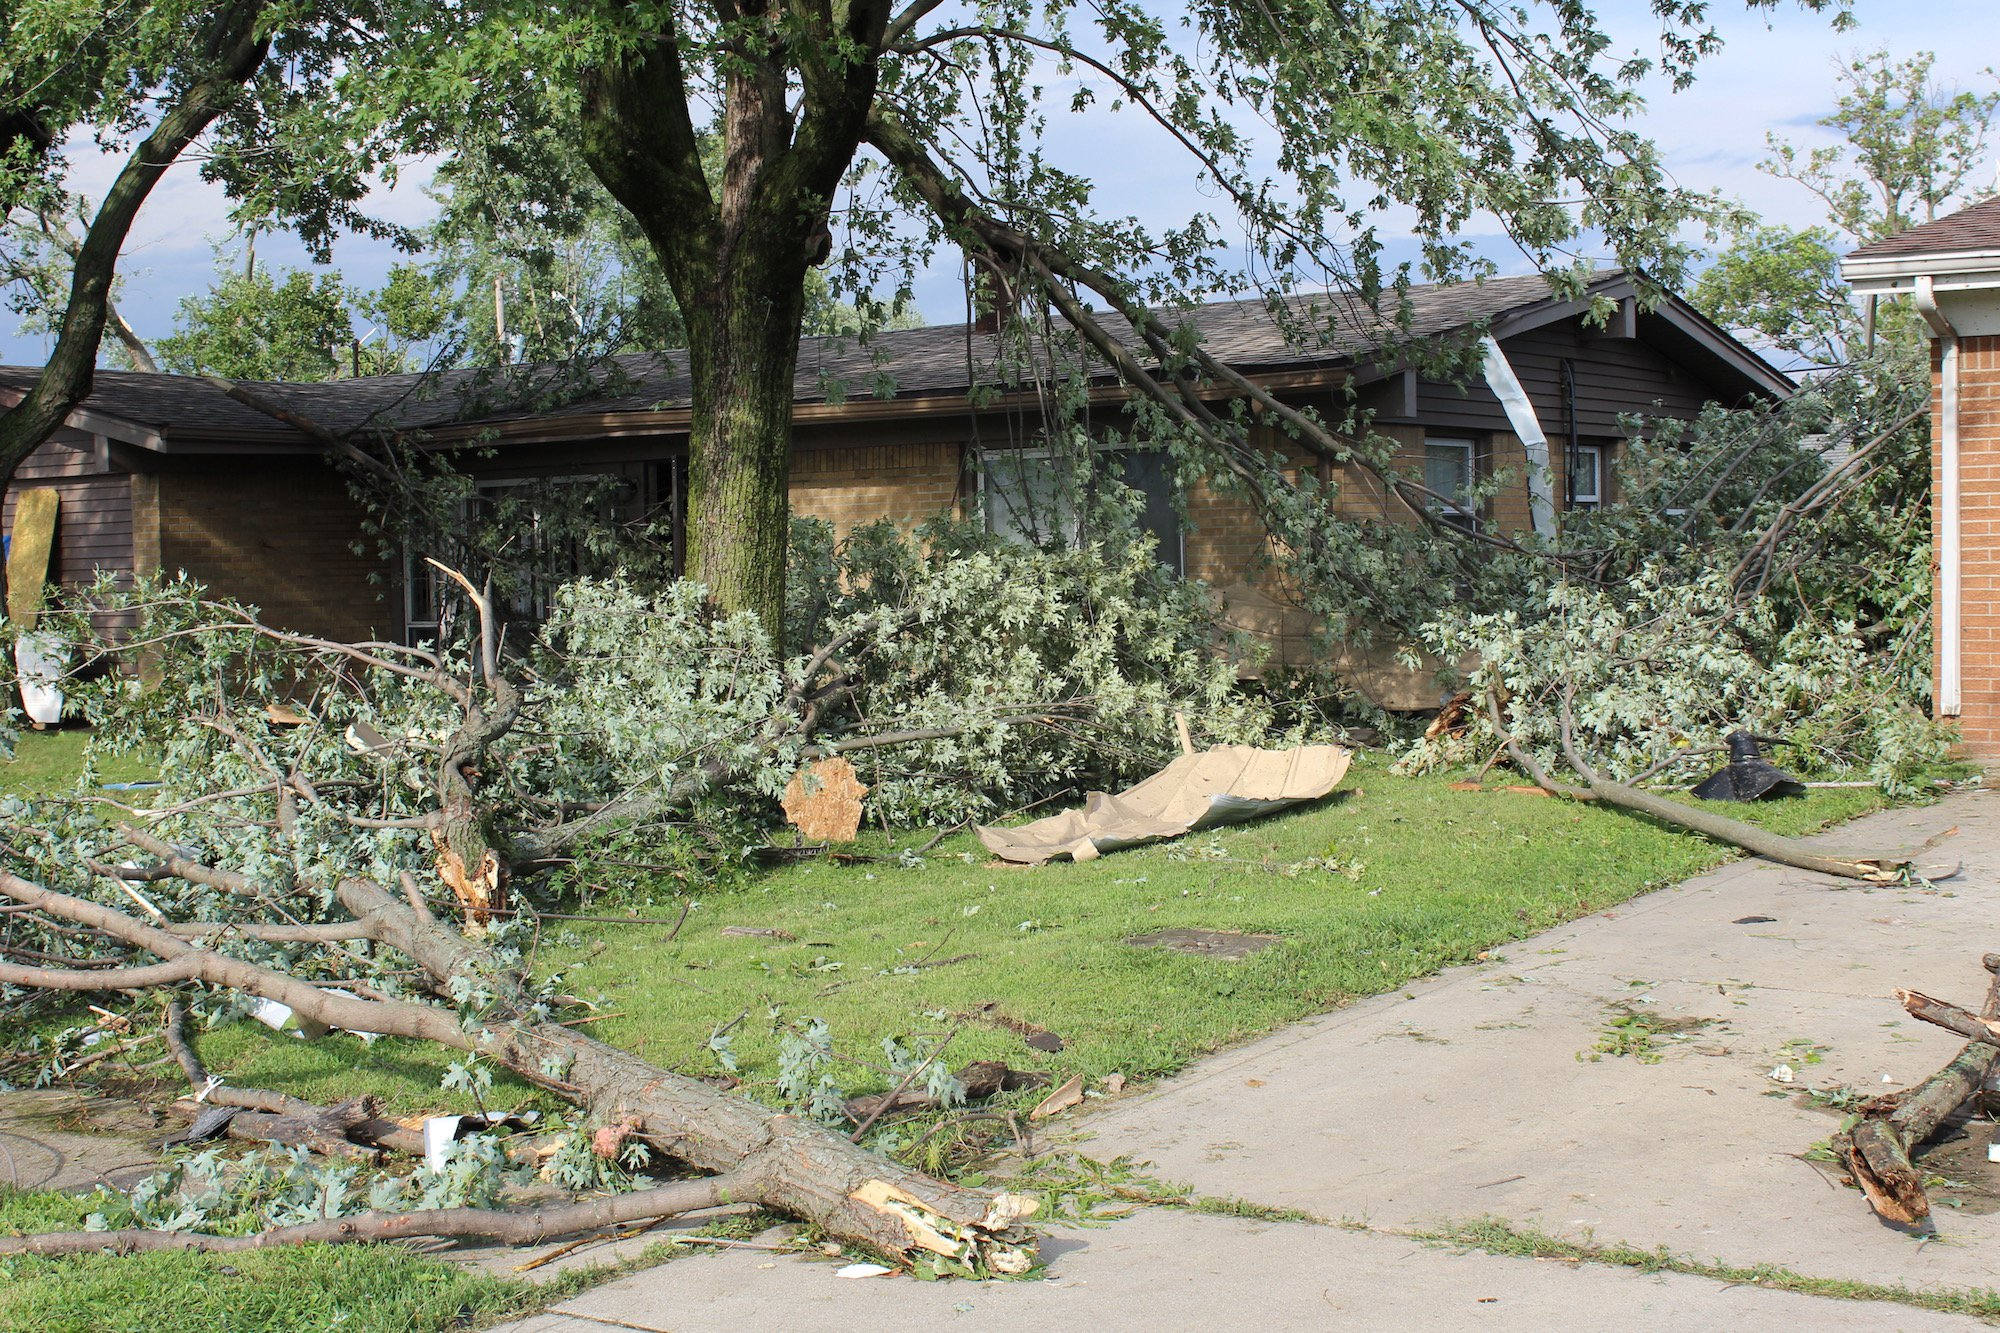 A tornado touched down near Imperial Drive in Kokomo, causing damage to trees and property nearby.